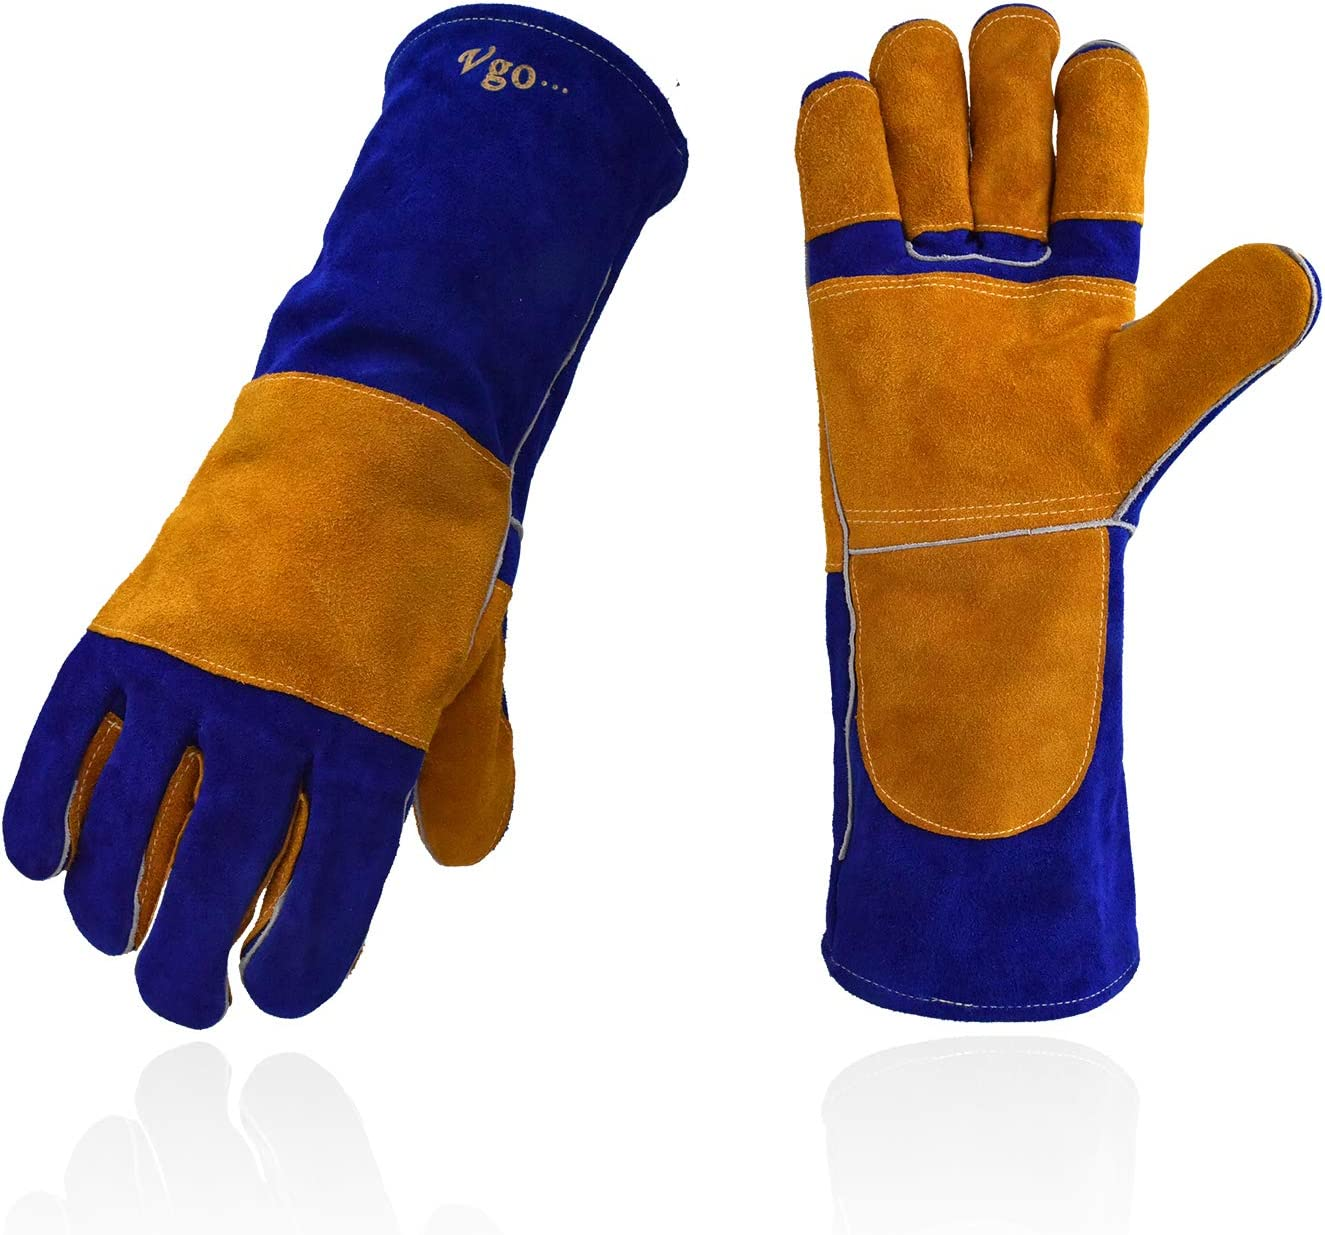 Mig 16inch, White+Blue, CB9681 Vgo 3Pairs Premium Cow Split Leather Welding Gloves For Oven Pot Holder Stove Grill Tig Welder BBQ Fireplace